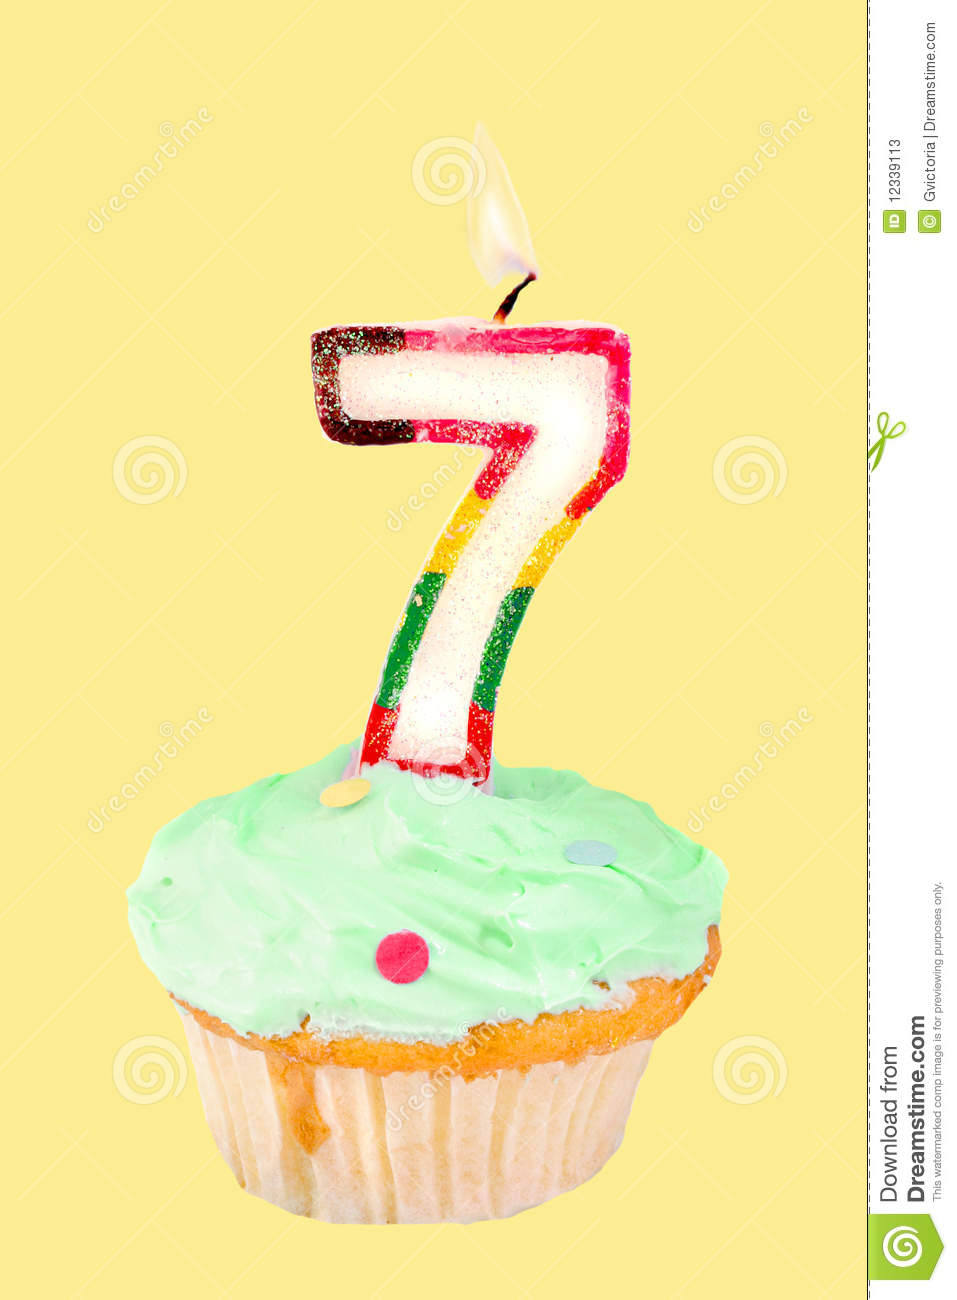 Seventh Birthday Cupcake With Green Frosting On A Yellow Background